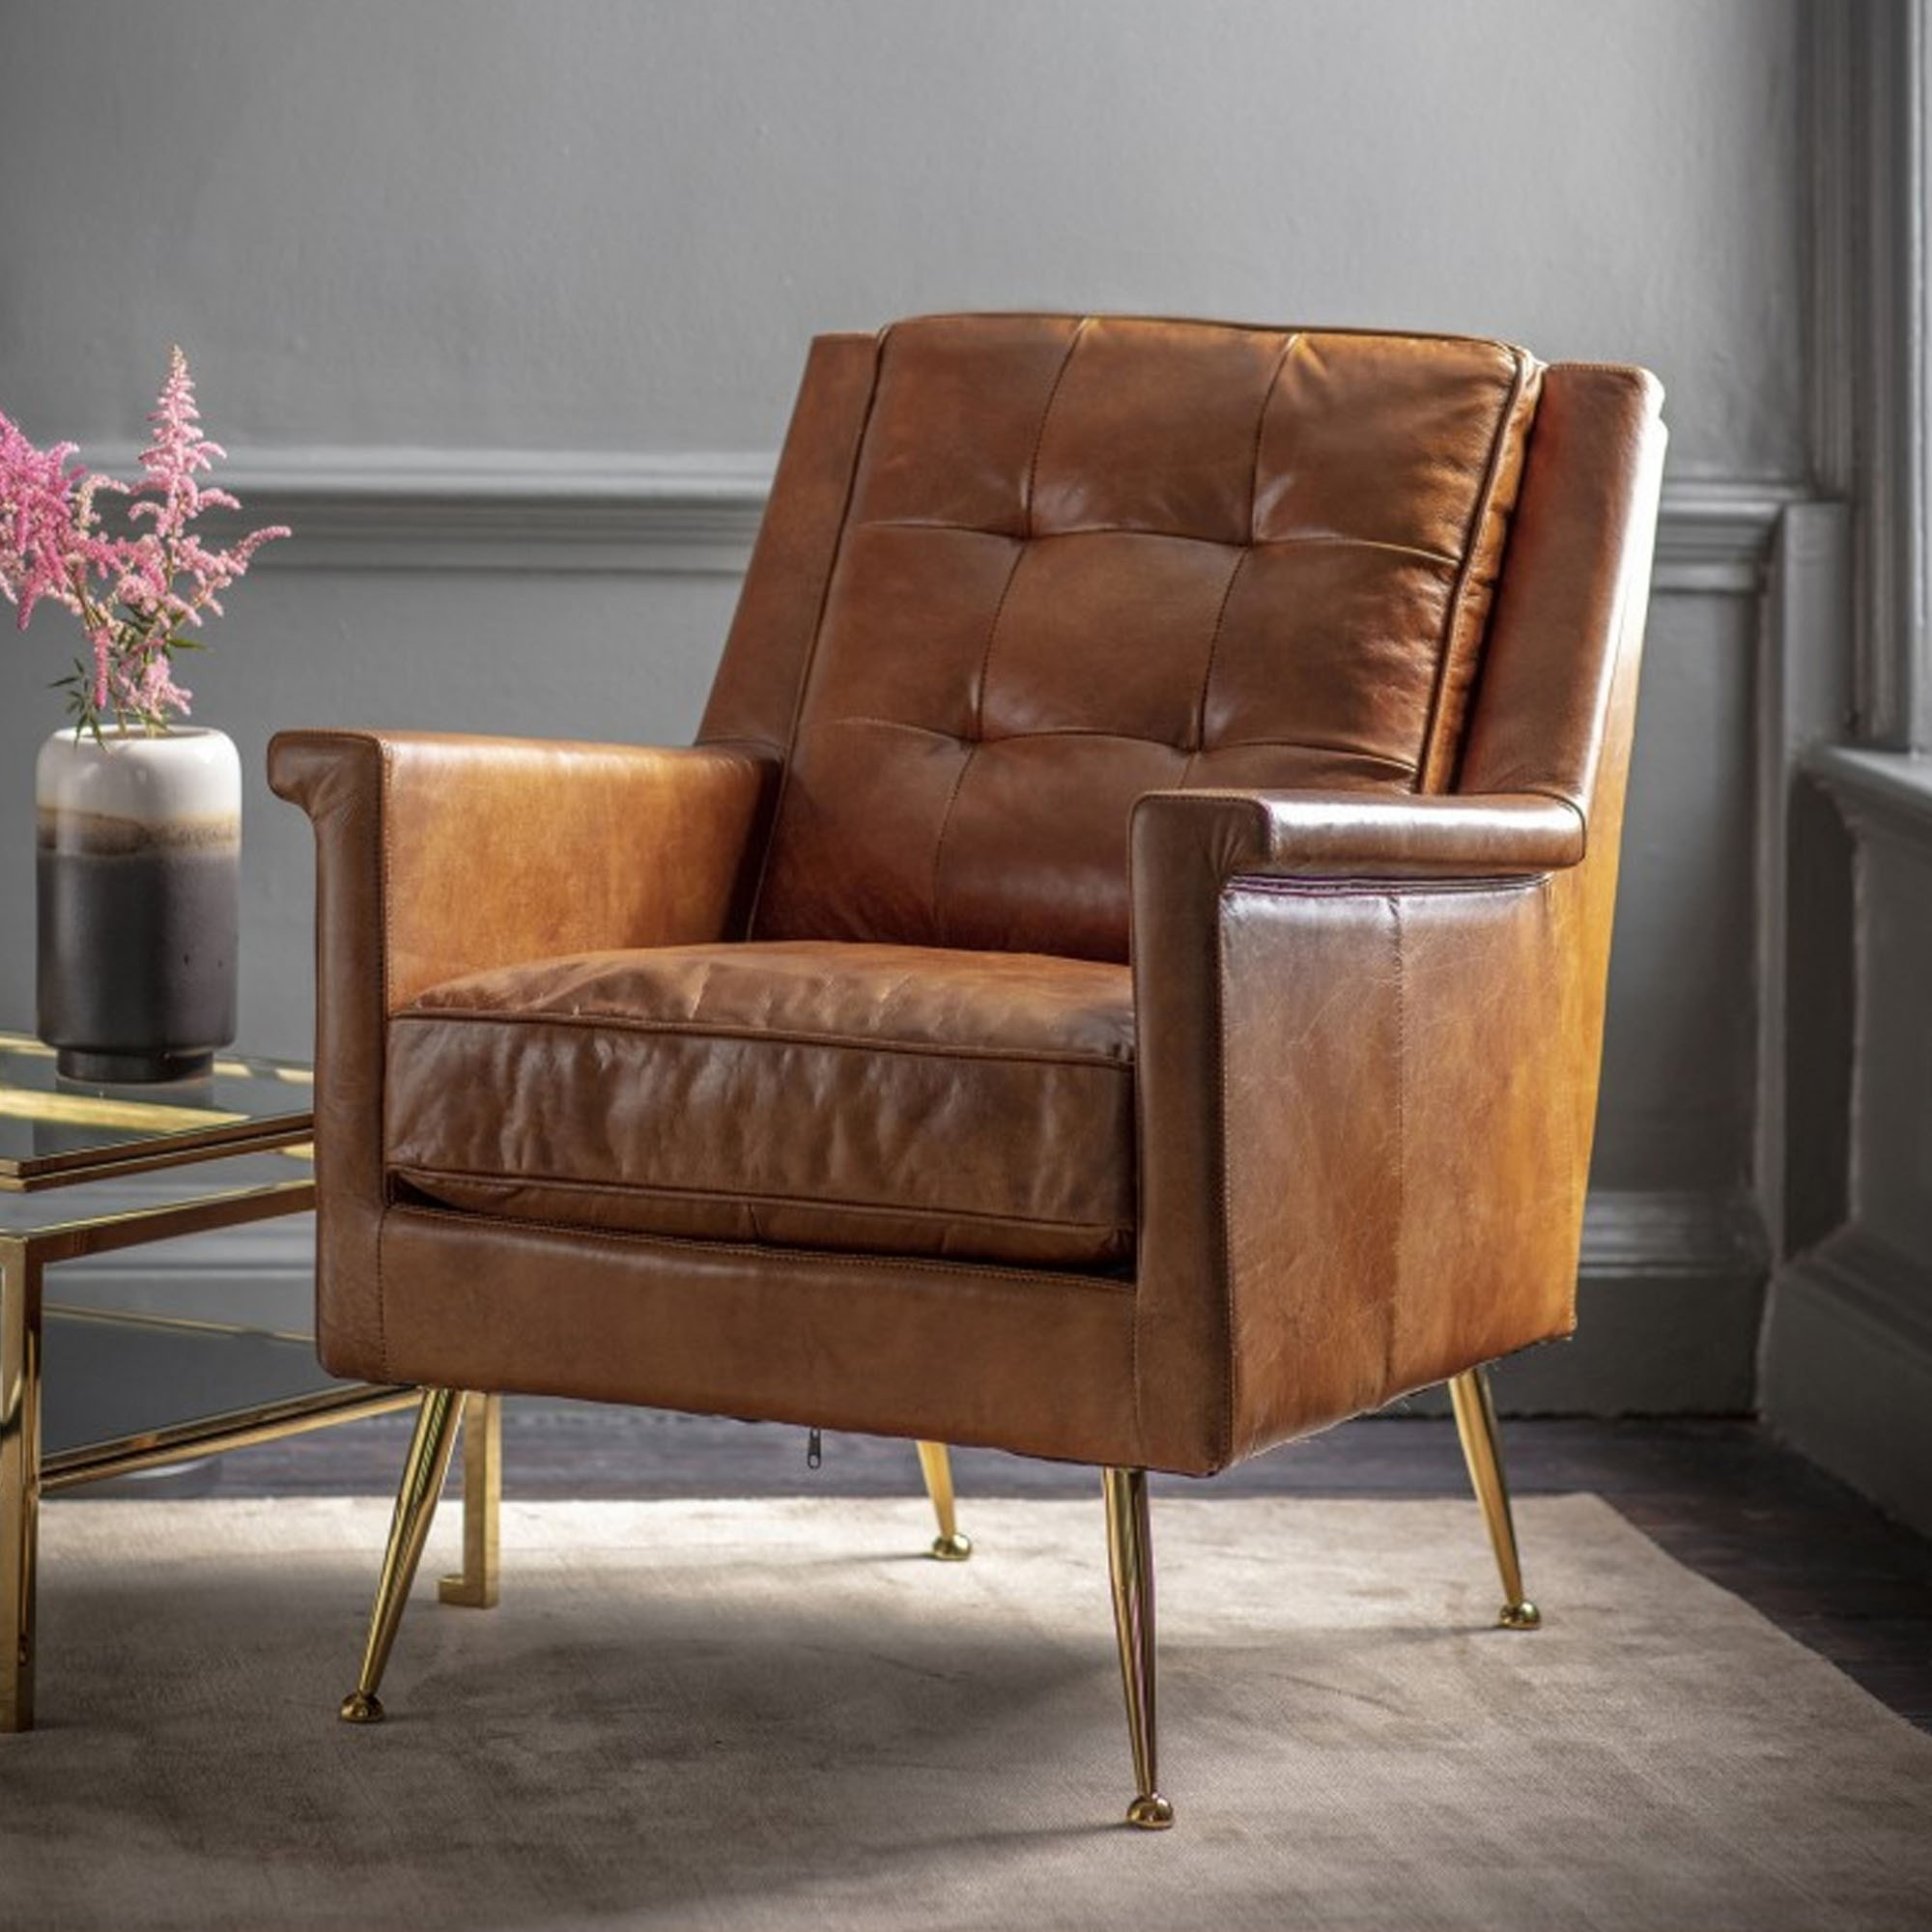 Manero Armchair Brown Leather Leather Arm Chair Brown Leather Chair